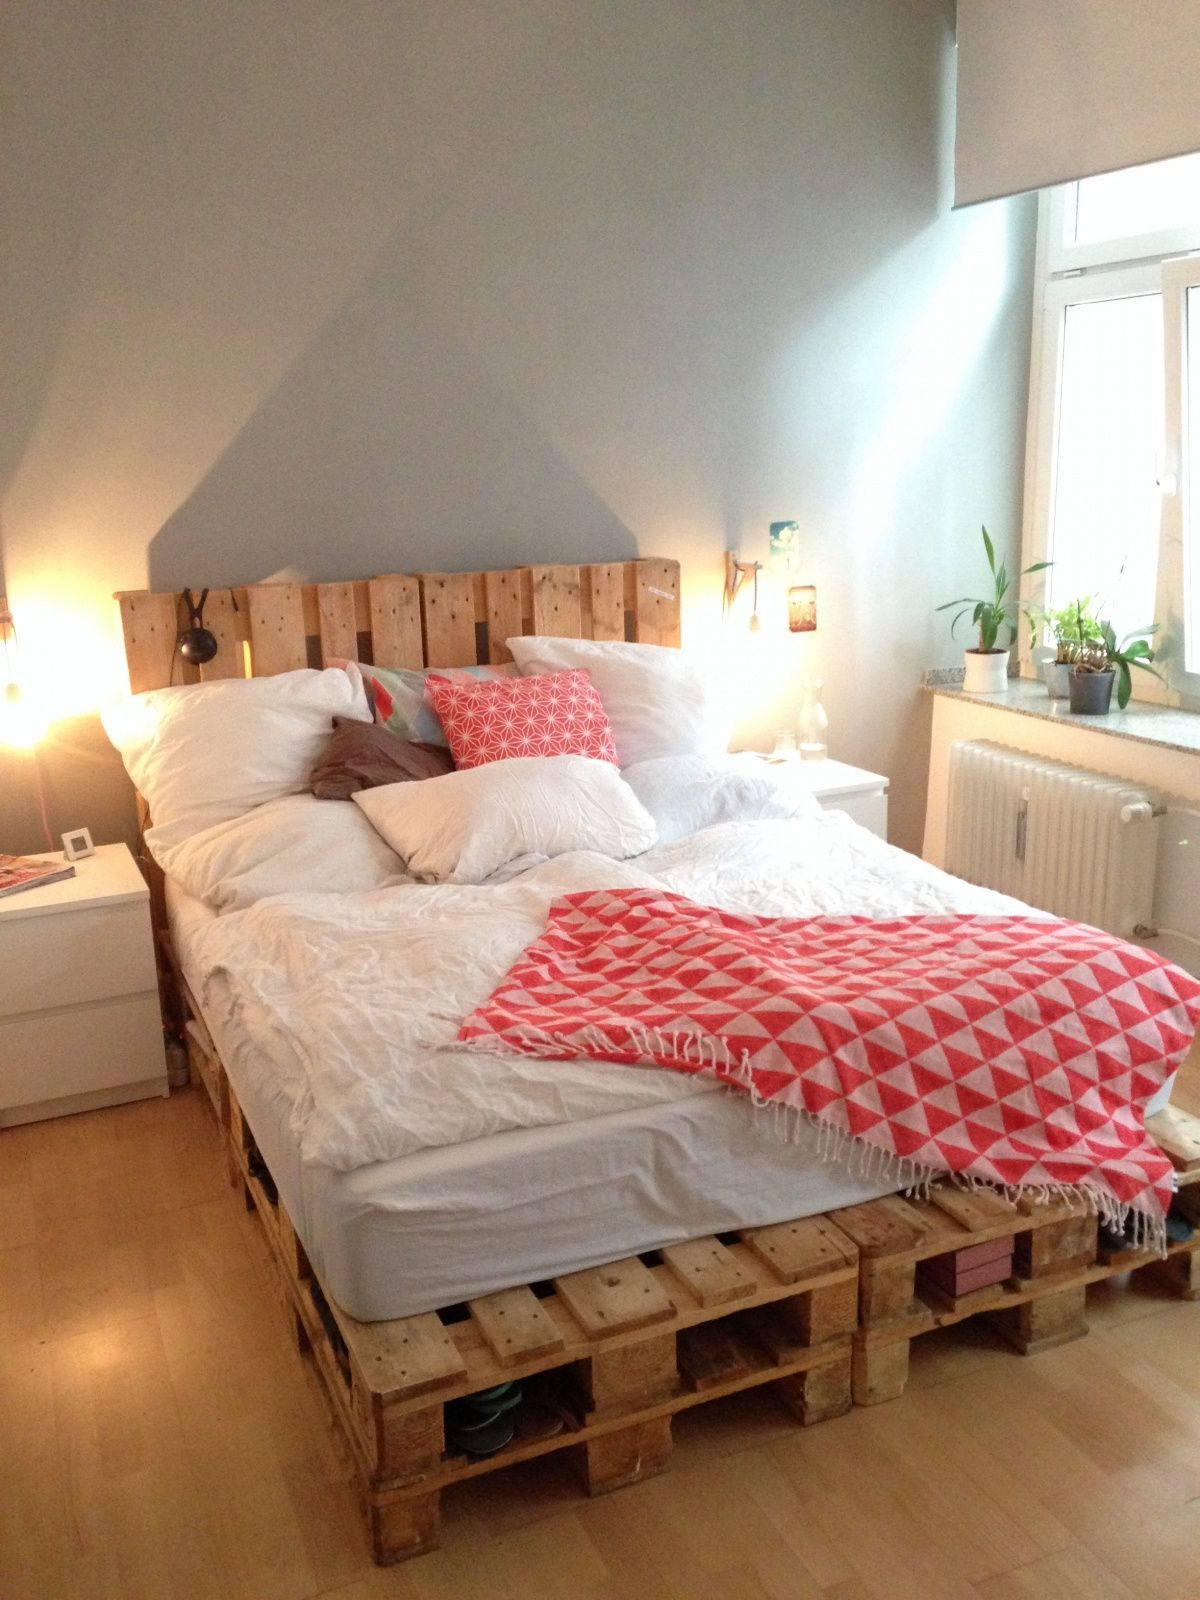 Palettenbett Palettenbett Zum Träumen Bedroom Ideas In 2019